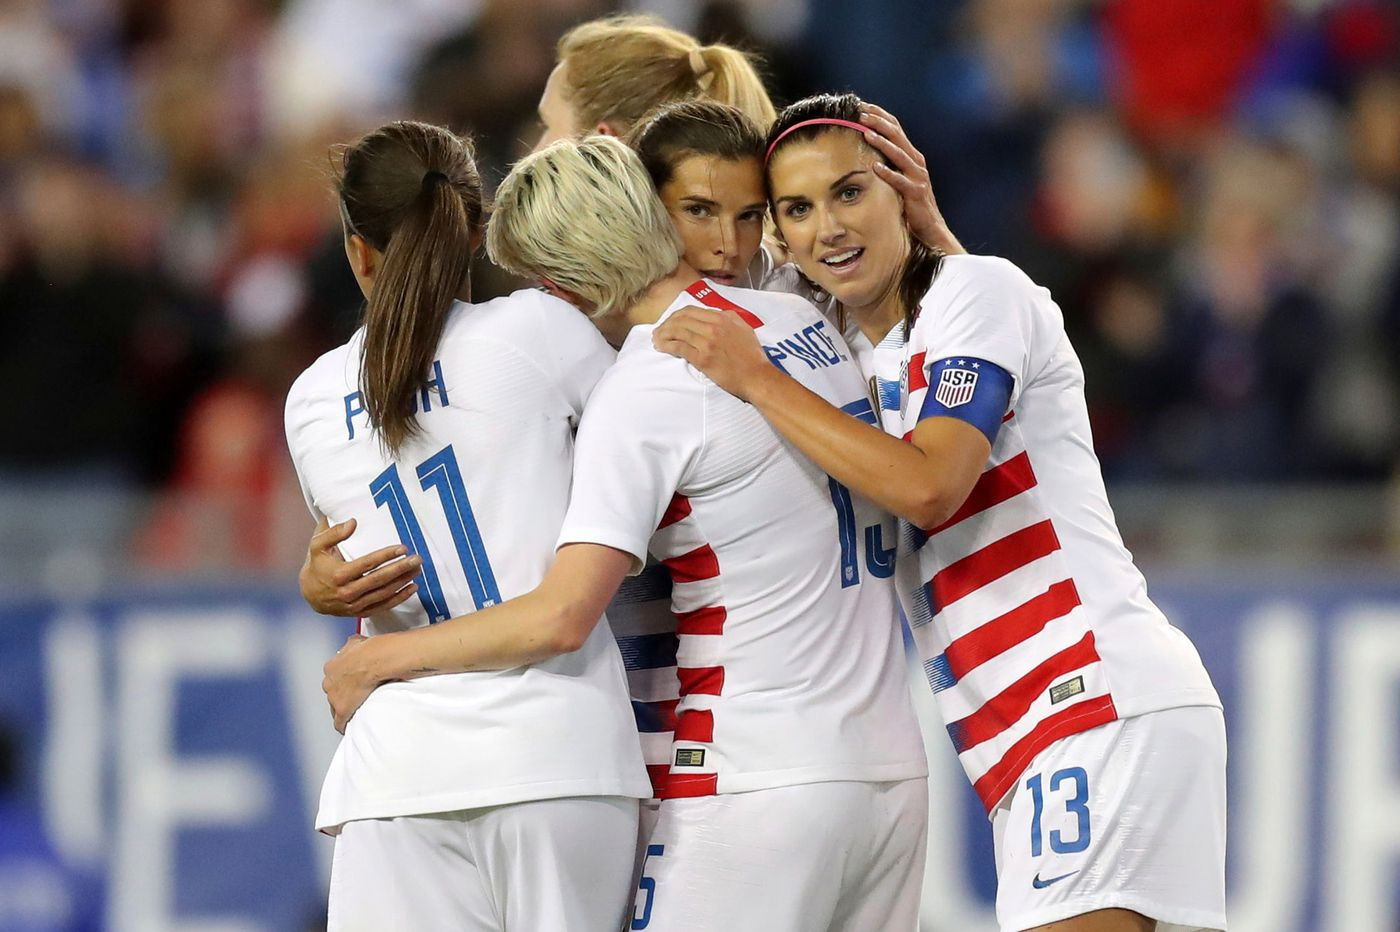 USWNT sues U.S. Soccer Federation, alleging Equal Pay Act discrimination